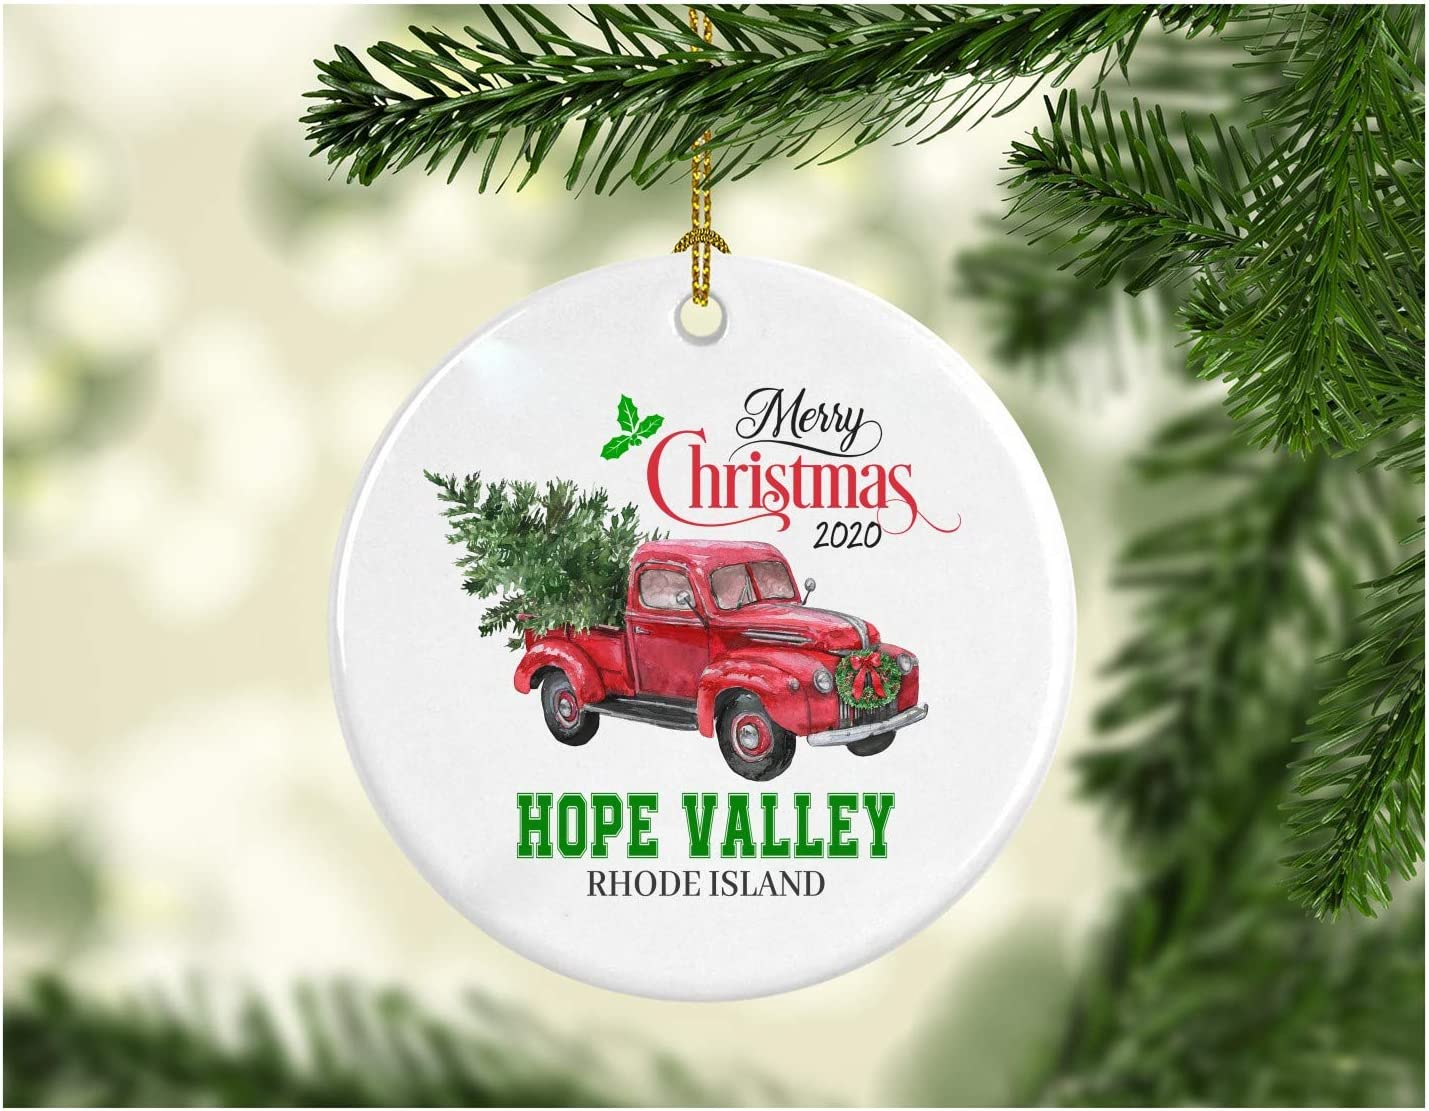 Will We Have A White Christmas In 2020 Rhode Island Amazon.com: Christmas Decoration Tree Merry Christmas Ornament